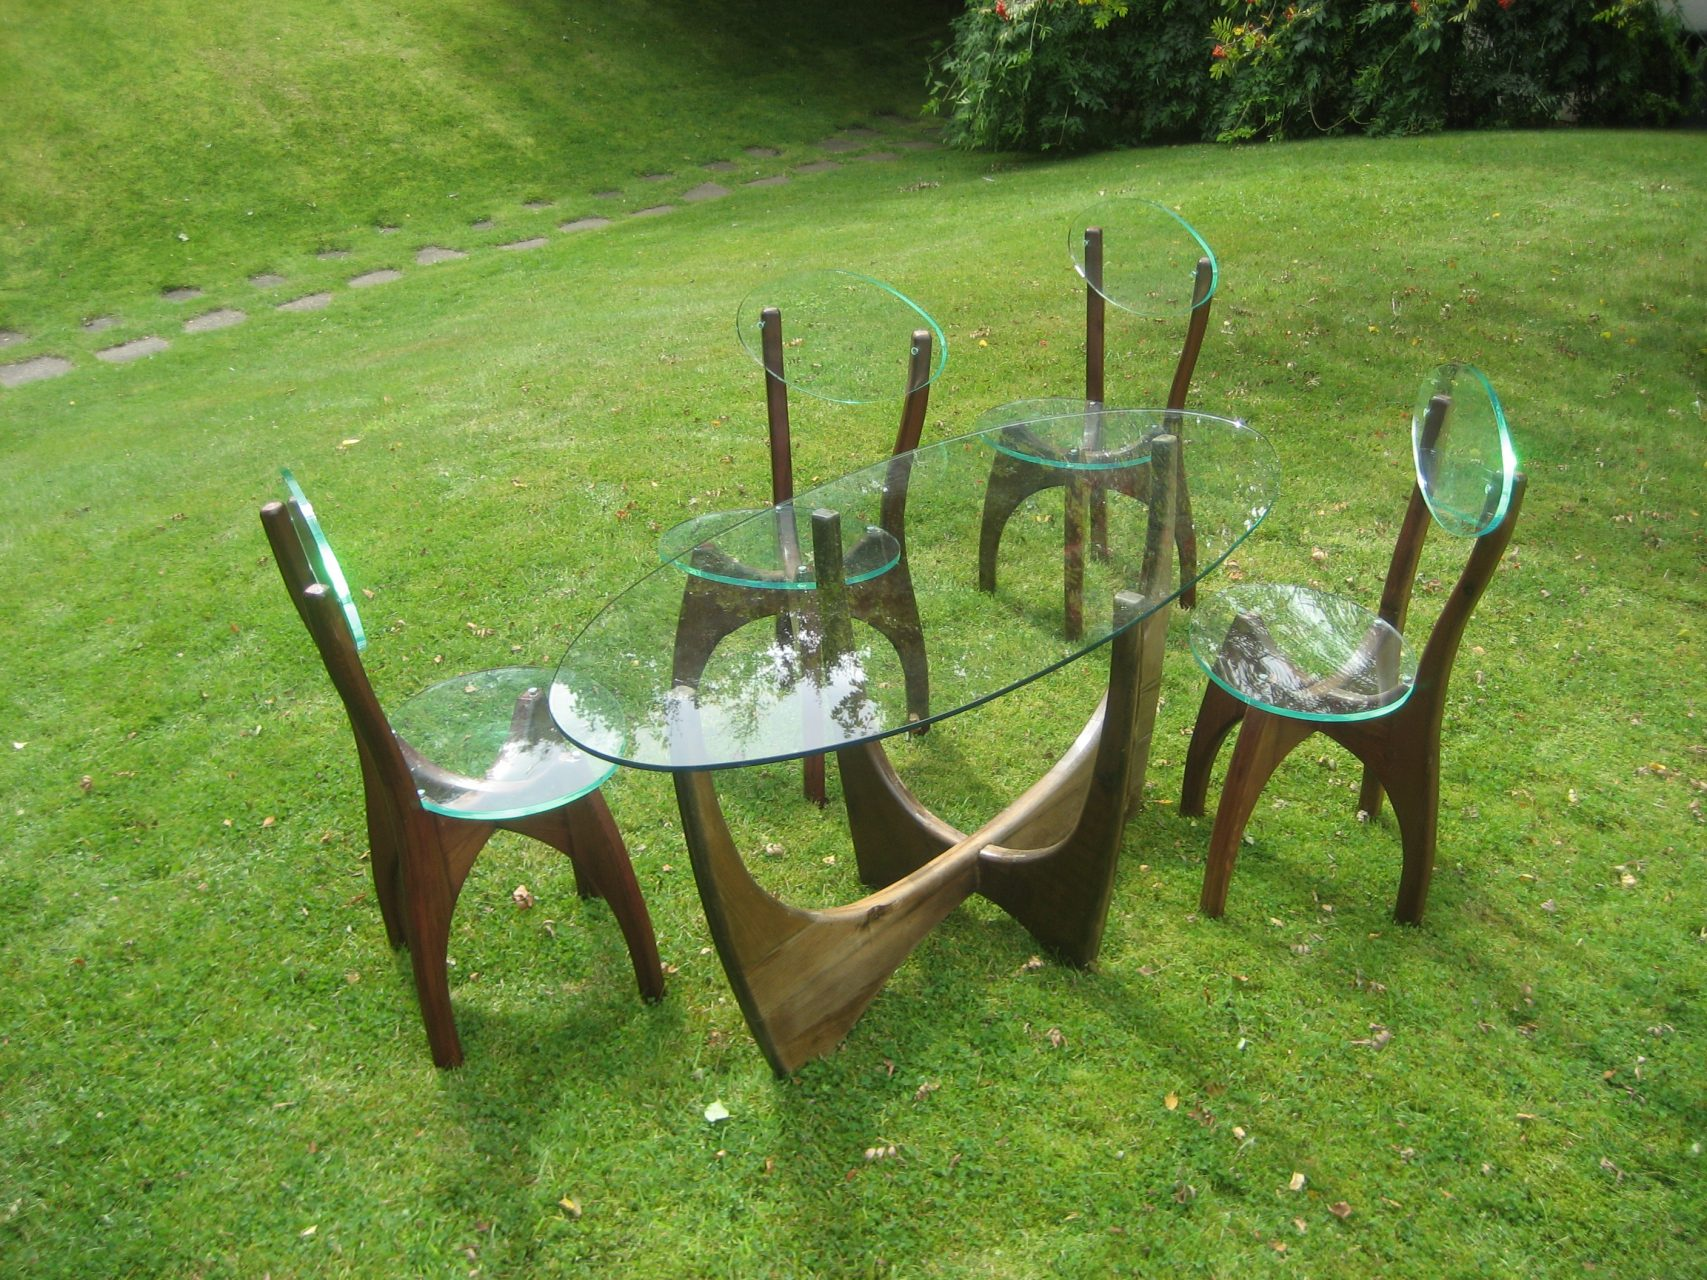 Pine-garden-furniture-stained-and-varnished-pine-acrylic-seats-and-glass-top-.-1